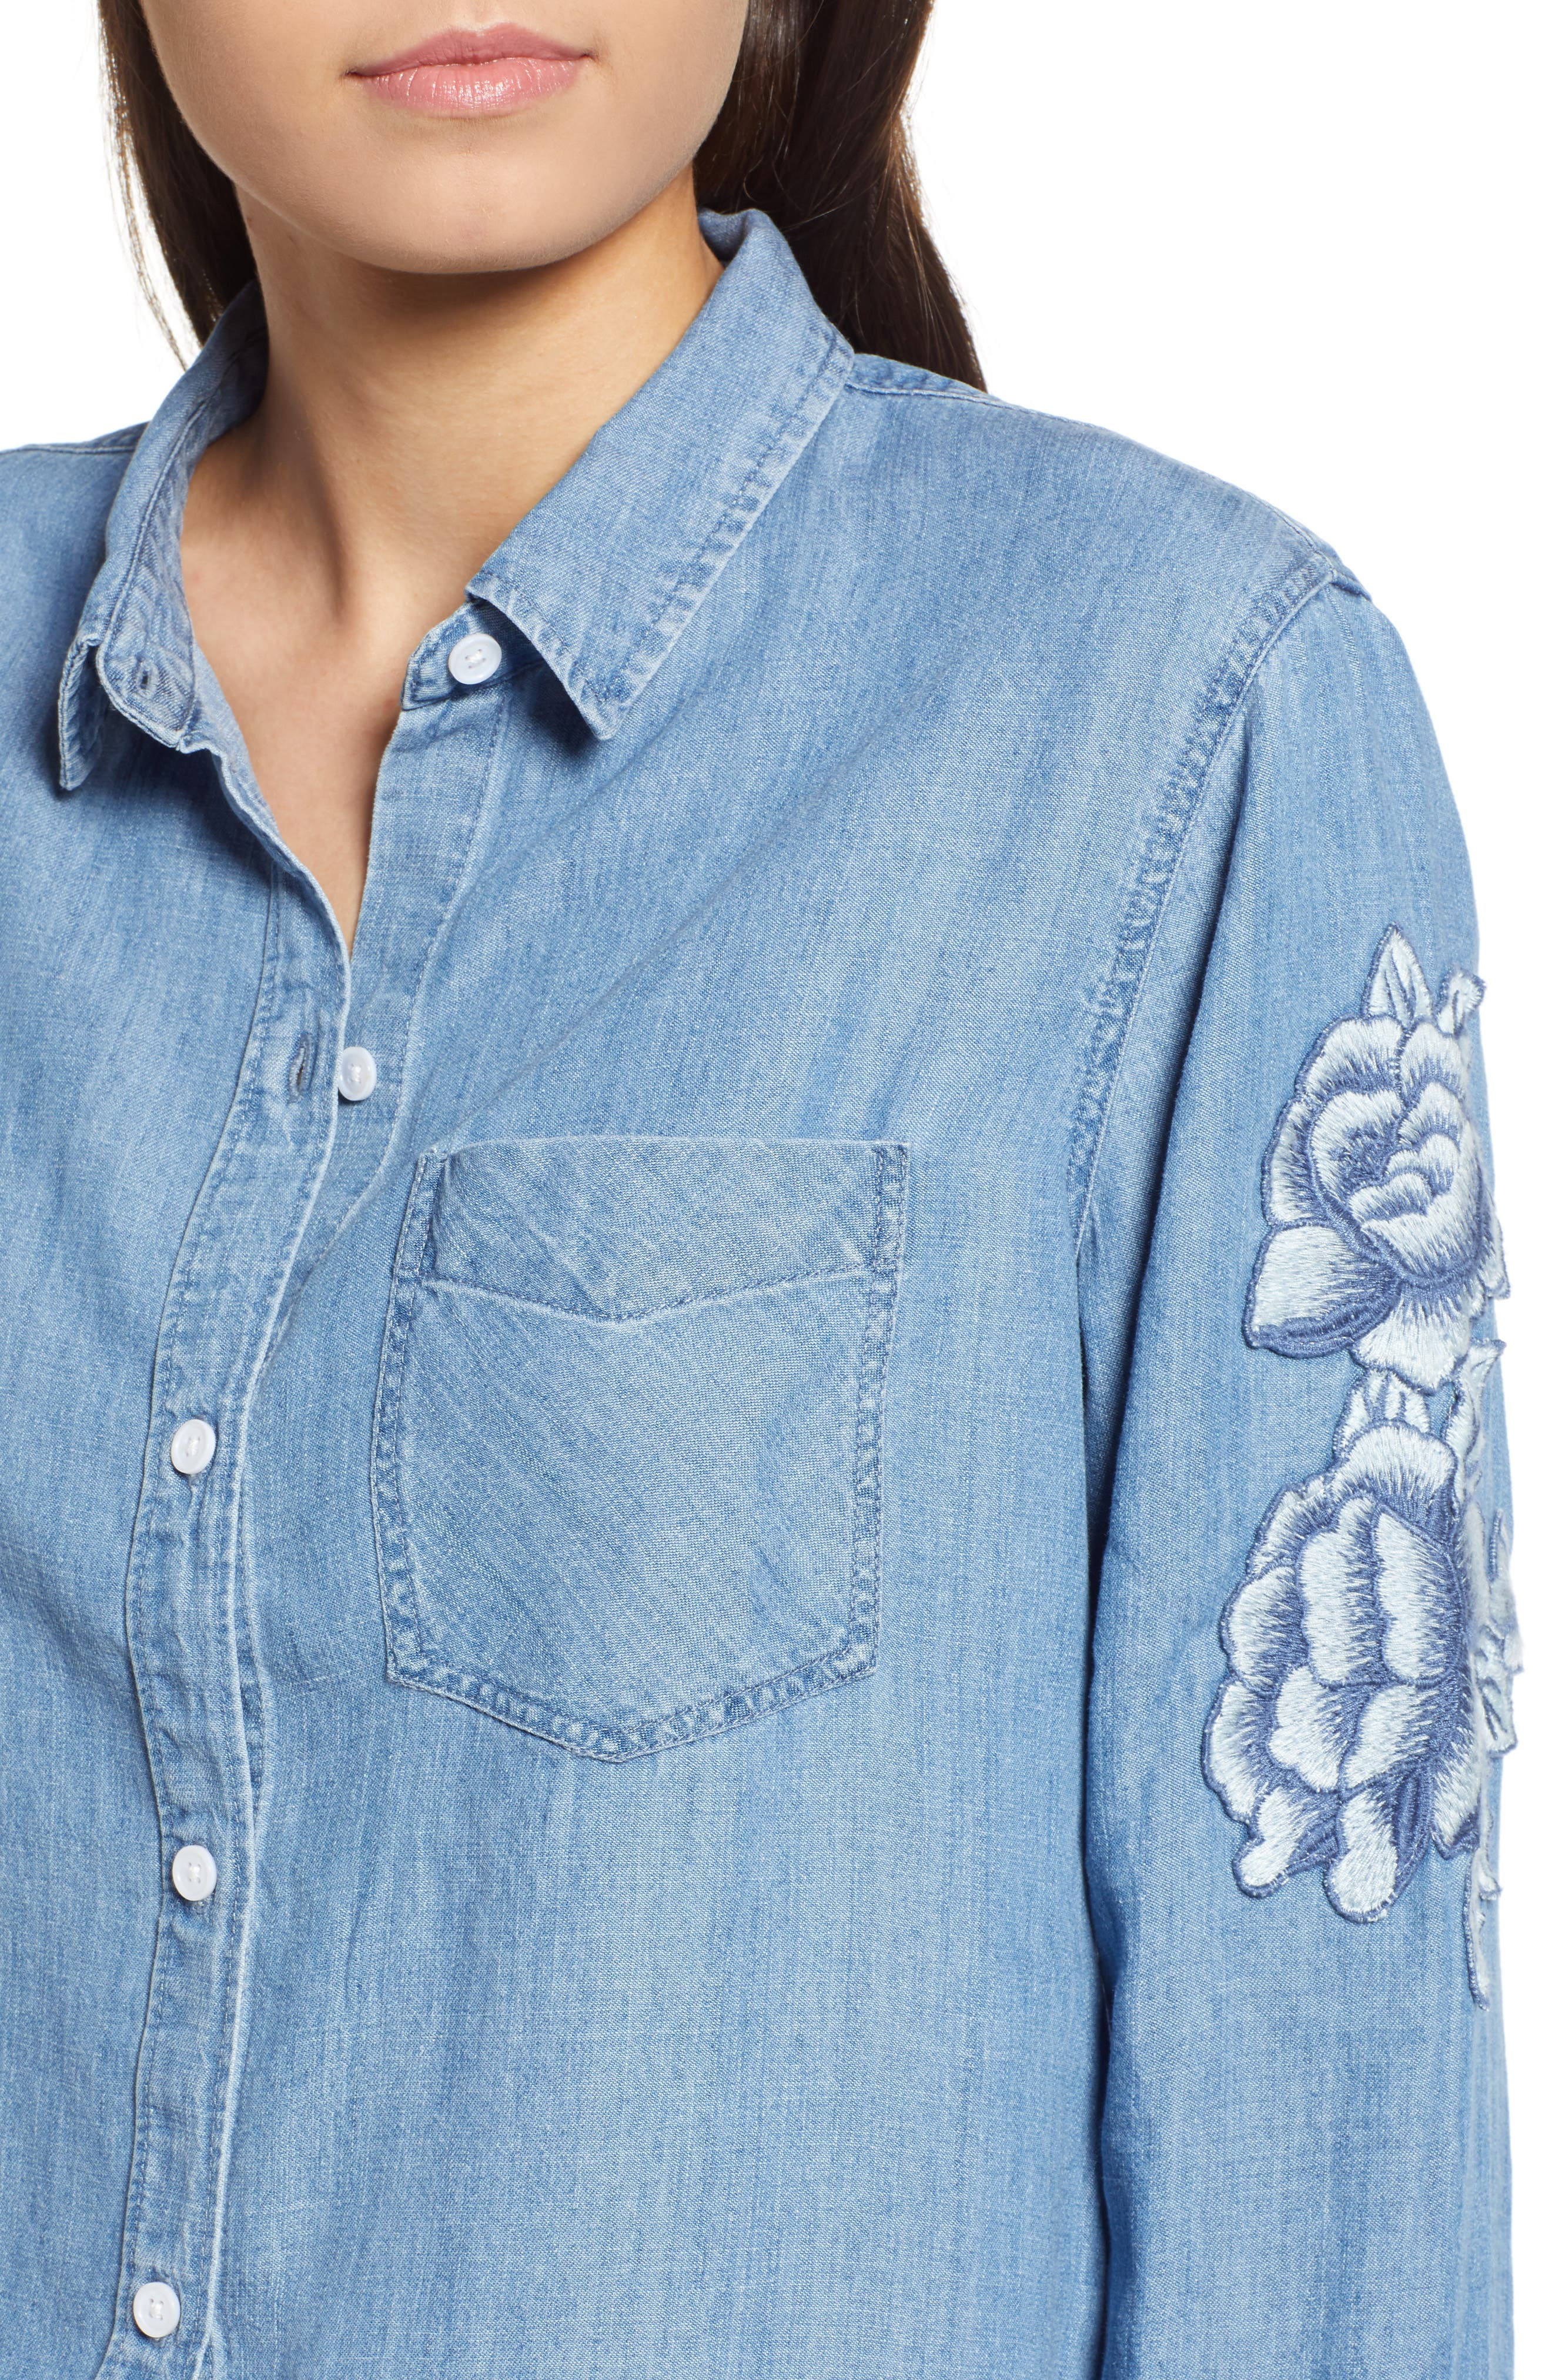 RAILS,                             Ingrid Embroidered Chambray Shirt,                             Alternate thumbnail 5, color,                             493